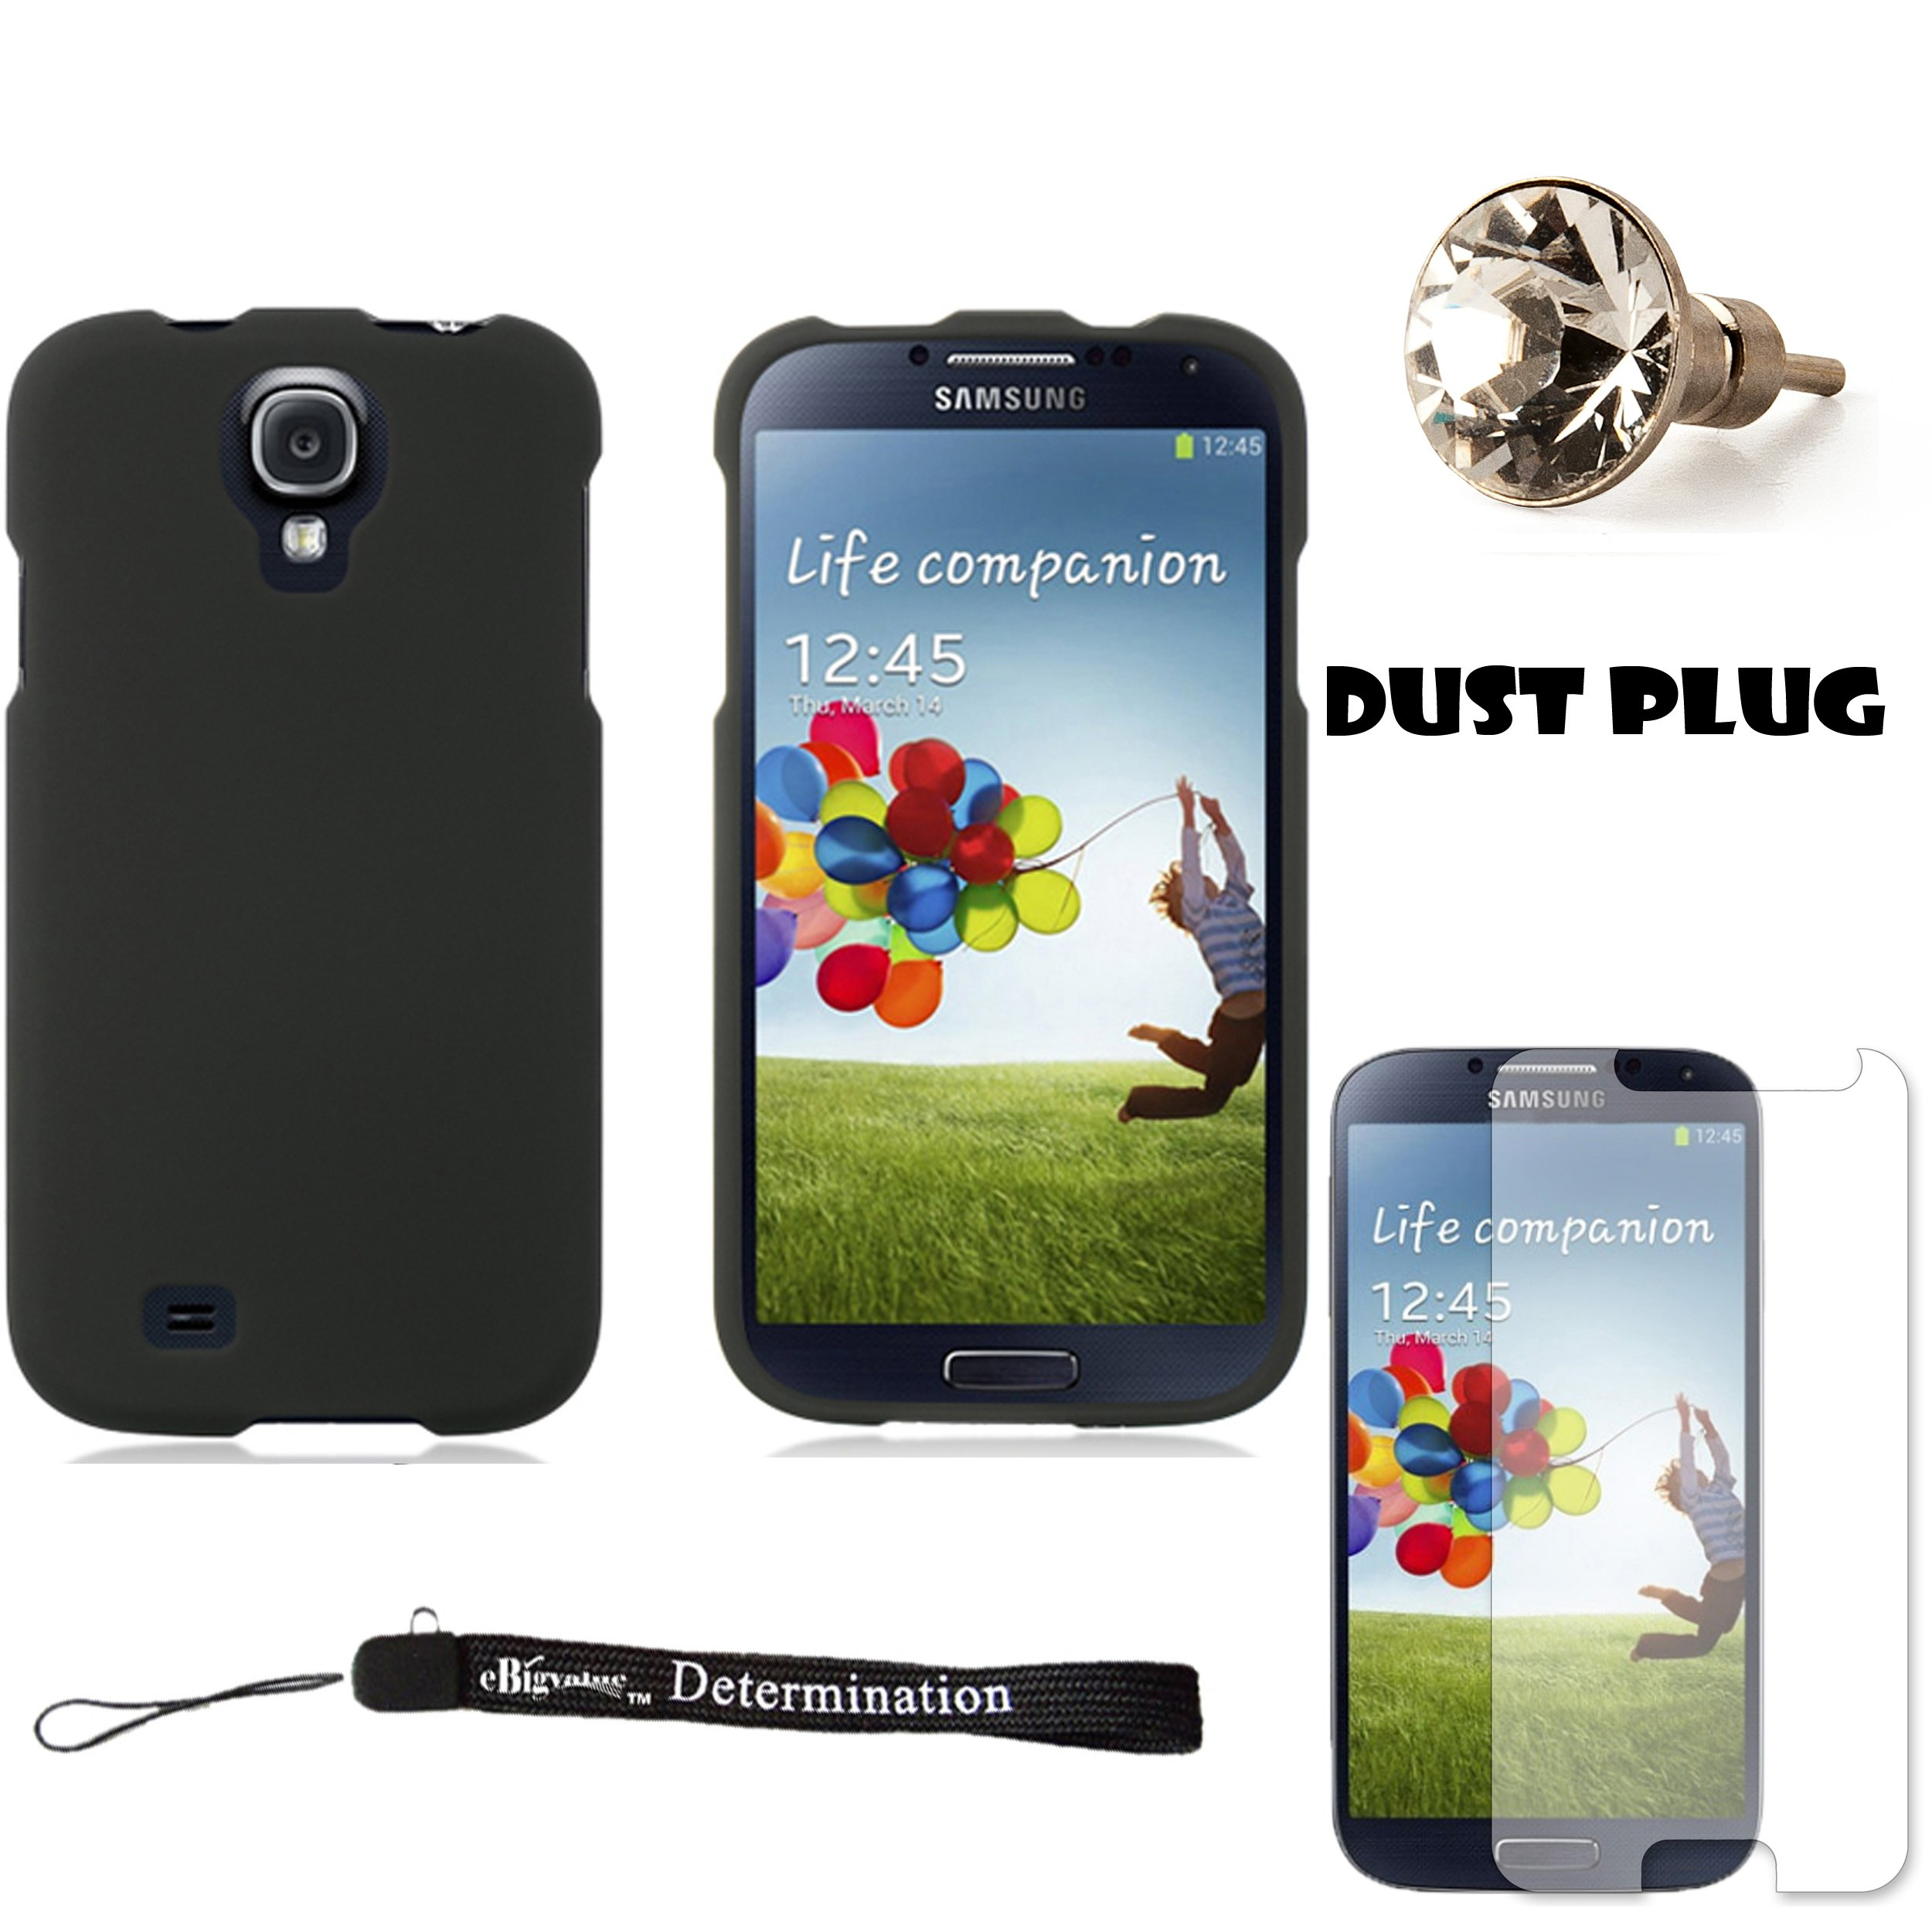 Black Premium Hard Design Crystal Case Snap On Cover For Samsung Galaxy S4 Android Smartphone 4G LTE (Jelly Bean) + Silver Swarovski Crystal Headphone Jack Dust Plug + Samsung Galaxy S4 Screen Guard Protector + an eBigValue  Determination Hand Strap